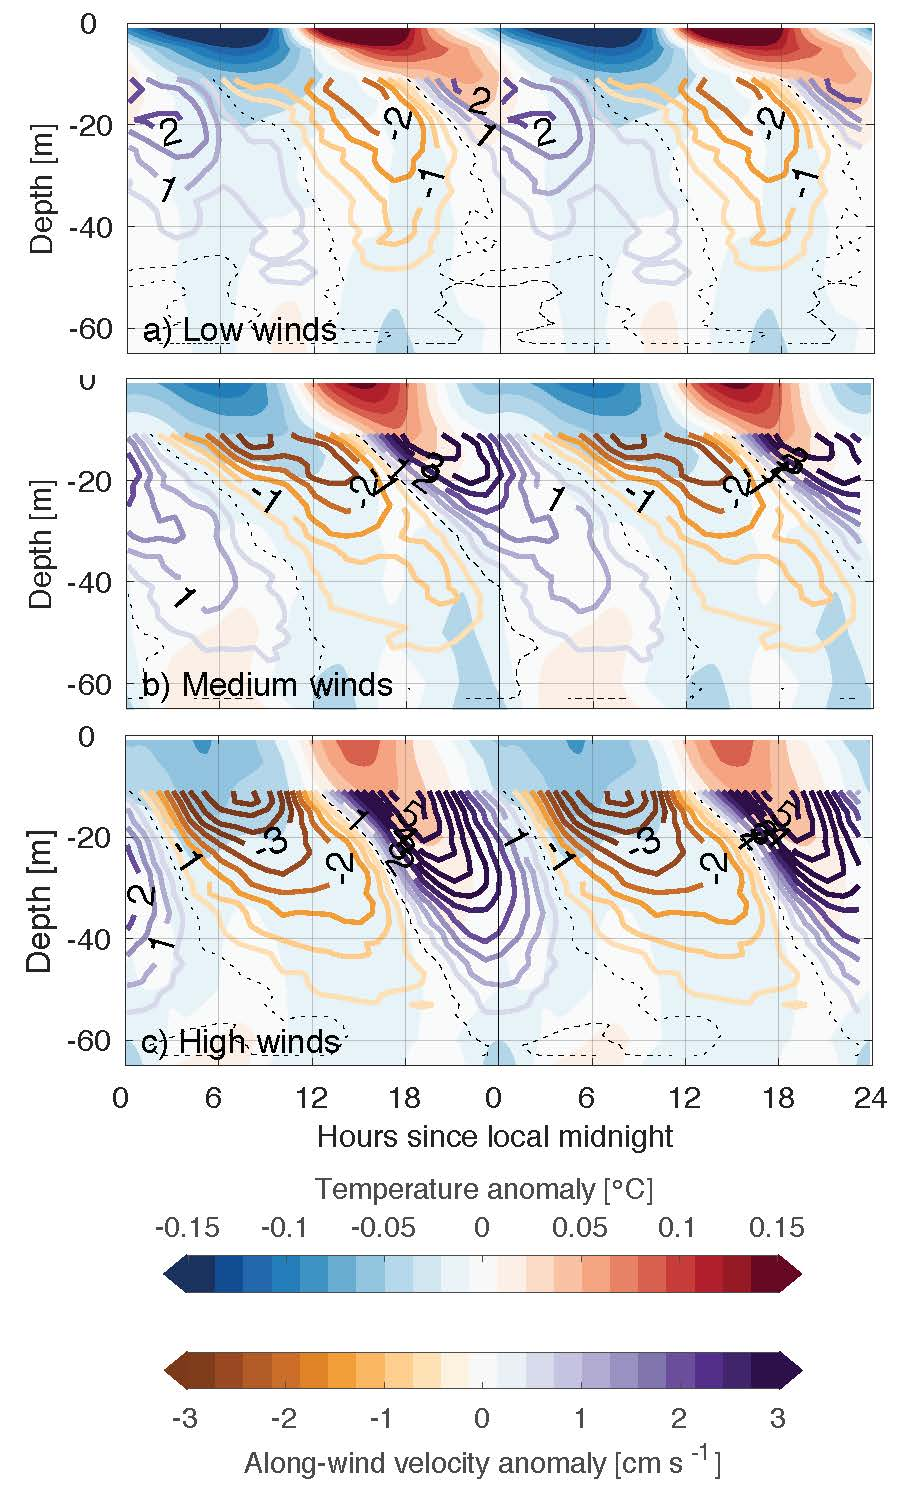 Diurnal composites of temperature and velocity for each tertile of daily mean wind speeds at 2S, 140W. Tertiles are: a) [2.35,5.60] m/s; b) [5.60,6.83] m/s; and c) [6.83,9.28] m/s. The diurnal jet appears to be stronger and deeper under higher wind conditions. From Masich et al., 2021.